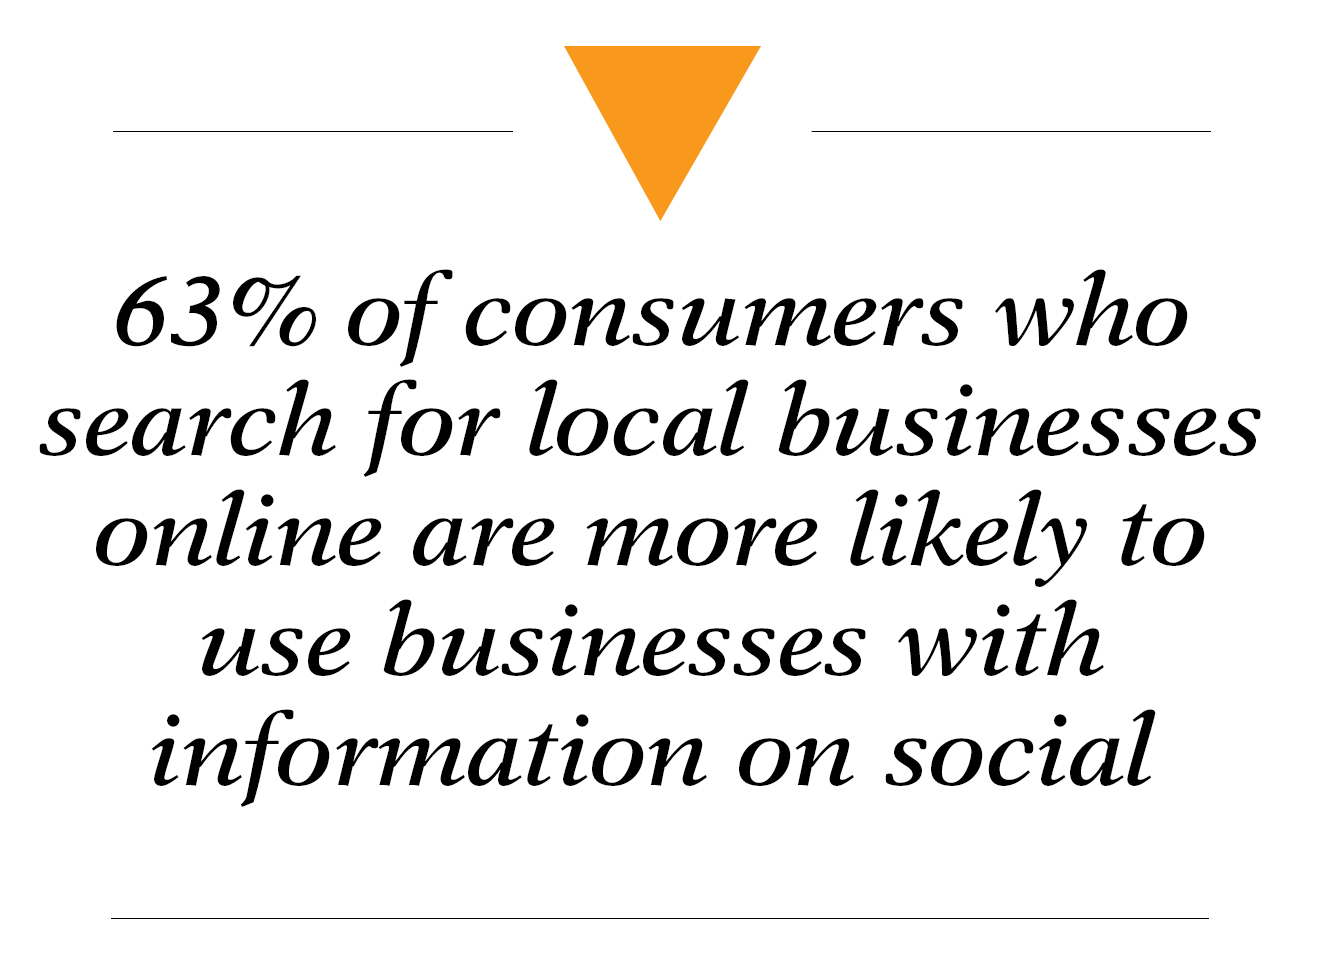 63% of consumers who search for local businesses online are more likely to use businesses with information on social - social media marketing